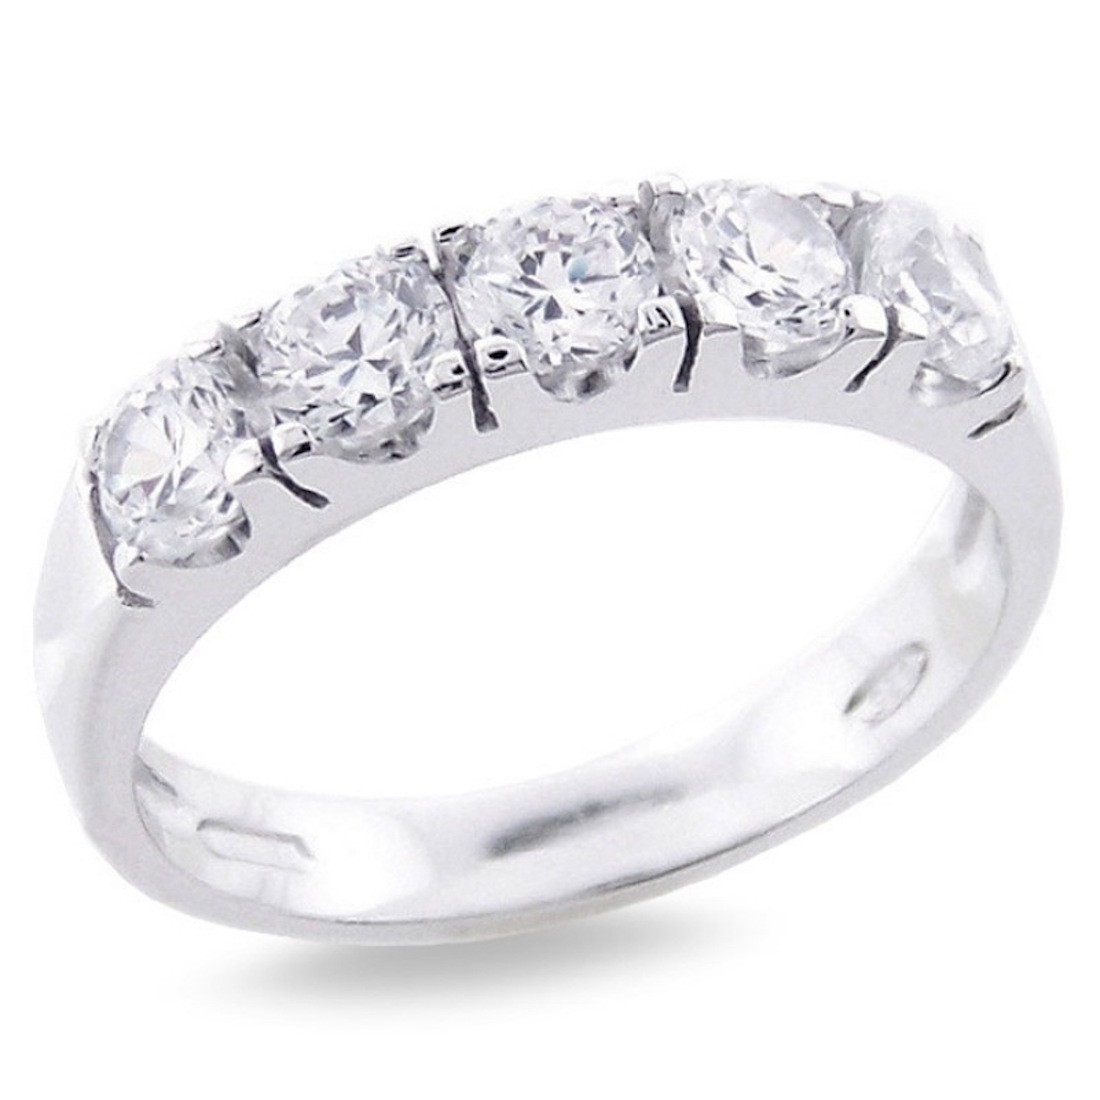 """Ring In 925 Sterling Silver Riviera Five Stone Cubic Zirconia With Regard To Most Current Diamond Five Stone """"s"""" Anniversary Bands In Sterling Silver (View 16 of 25)"""